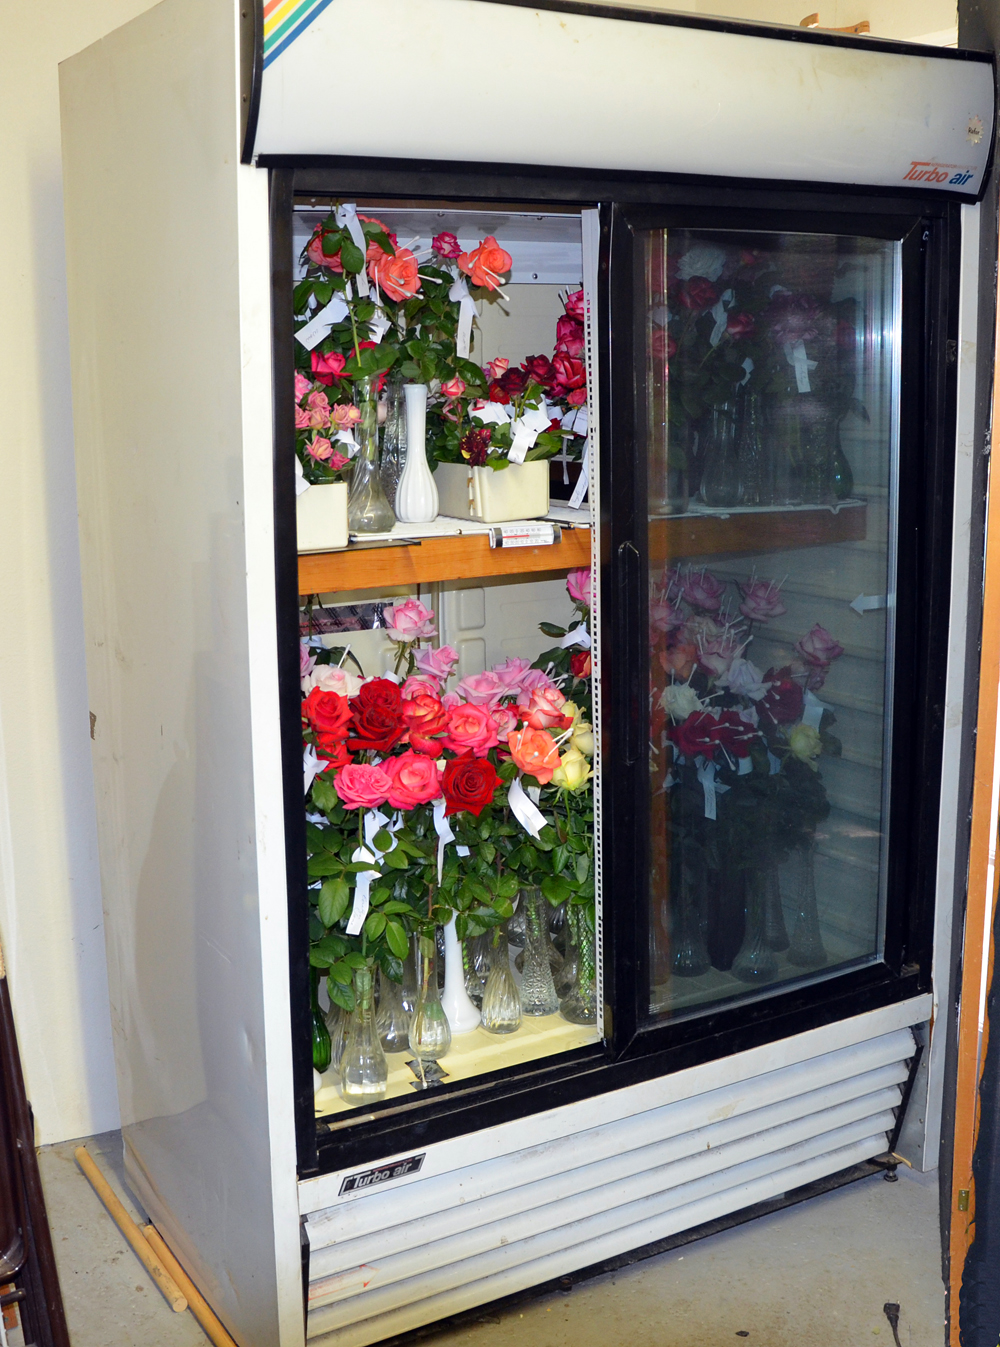 California_Article_2012/Roses_In_The_Fridge.jpg